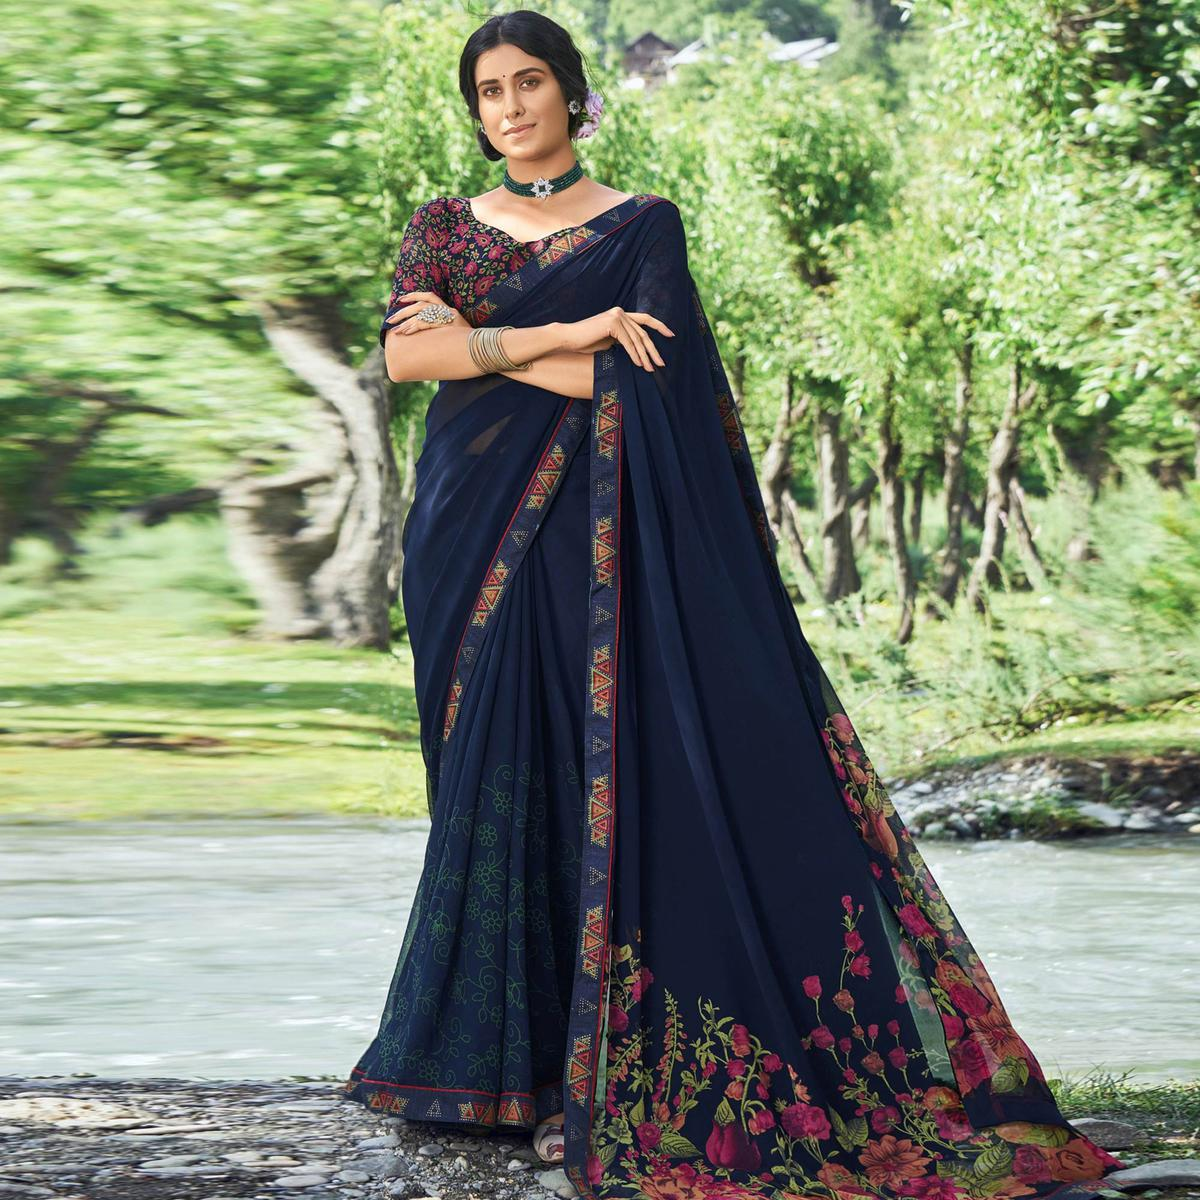 Triveni - Navy Blue Georgette Casual Wear Floral Printed Saree With Blouse Piece